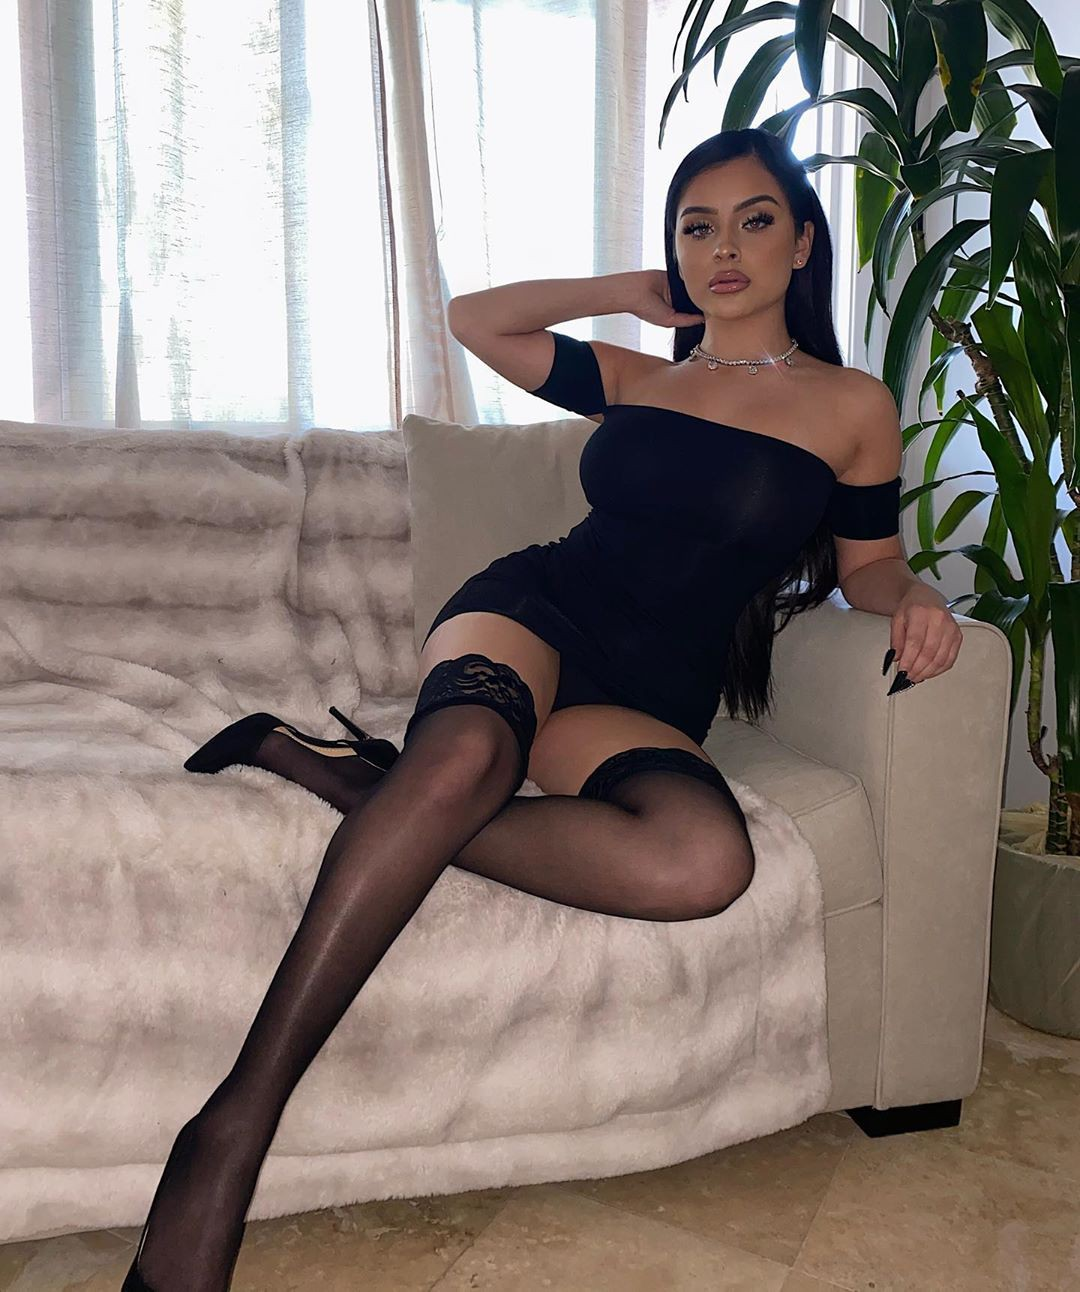 Aidette Cancino fetish model, pantyhose, stocking outfits for women